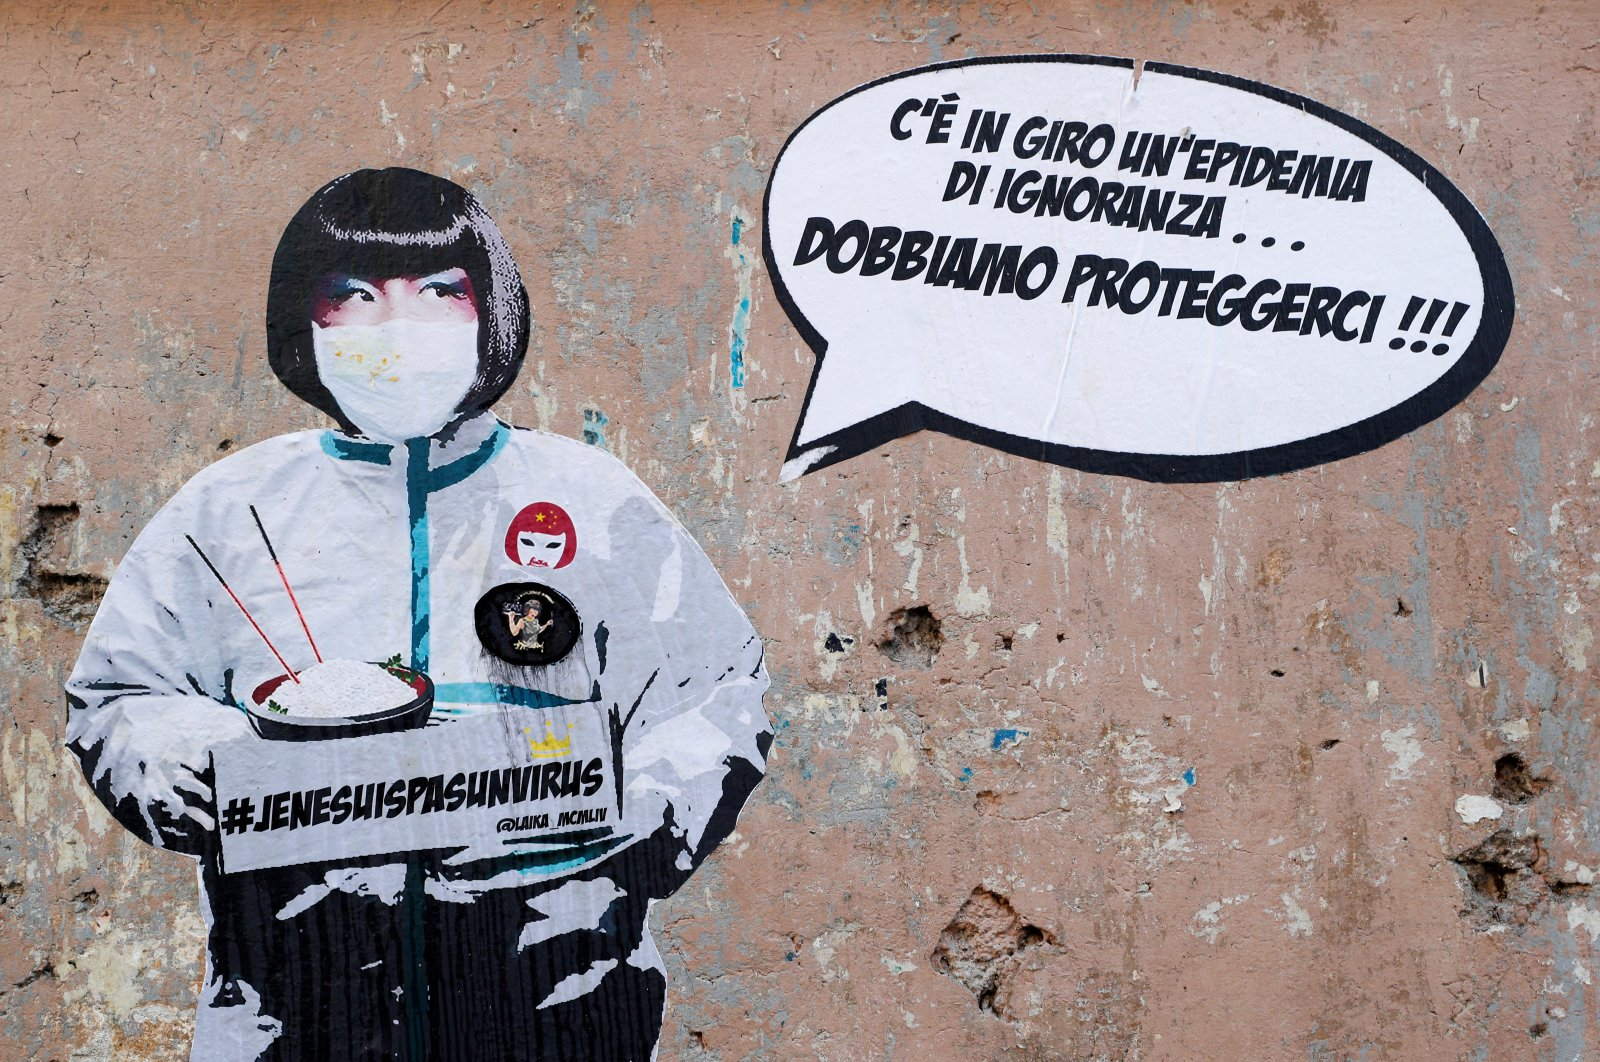 """A mural against xenophobia towards Chinese people is seen after two cases of the coronavirus were confirmed in Italy, by street artist Laika in Rome, Feb. 5, 2020. The mural shows a Chinese woman wearing a protective mask with text reading """"#JeNeSuisPasUnVirus"""" next to words on the wall that read: """"There is an epidemic of ignorance around, we need to protect ourselves."""" REUTERS"""